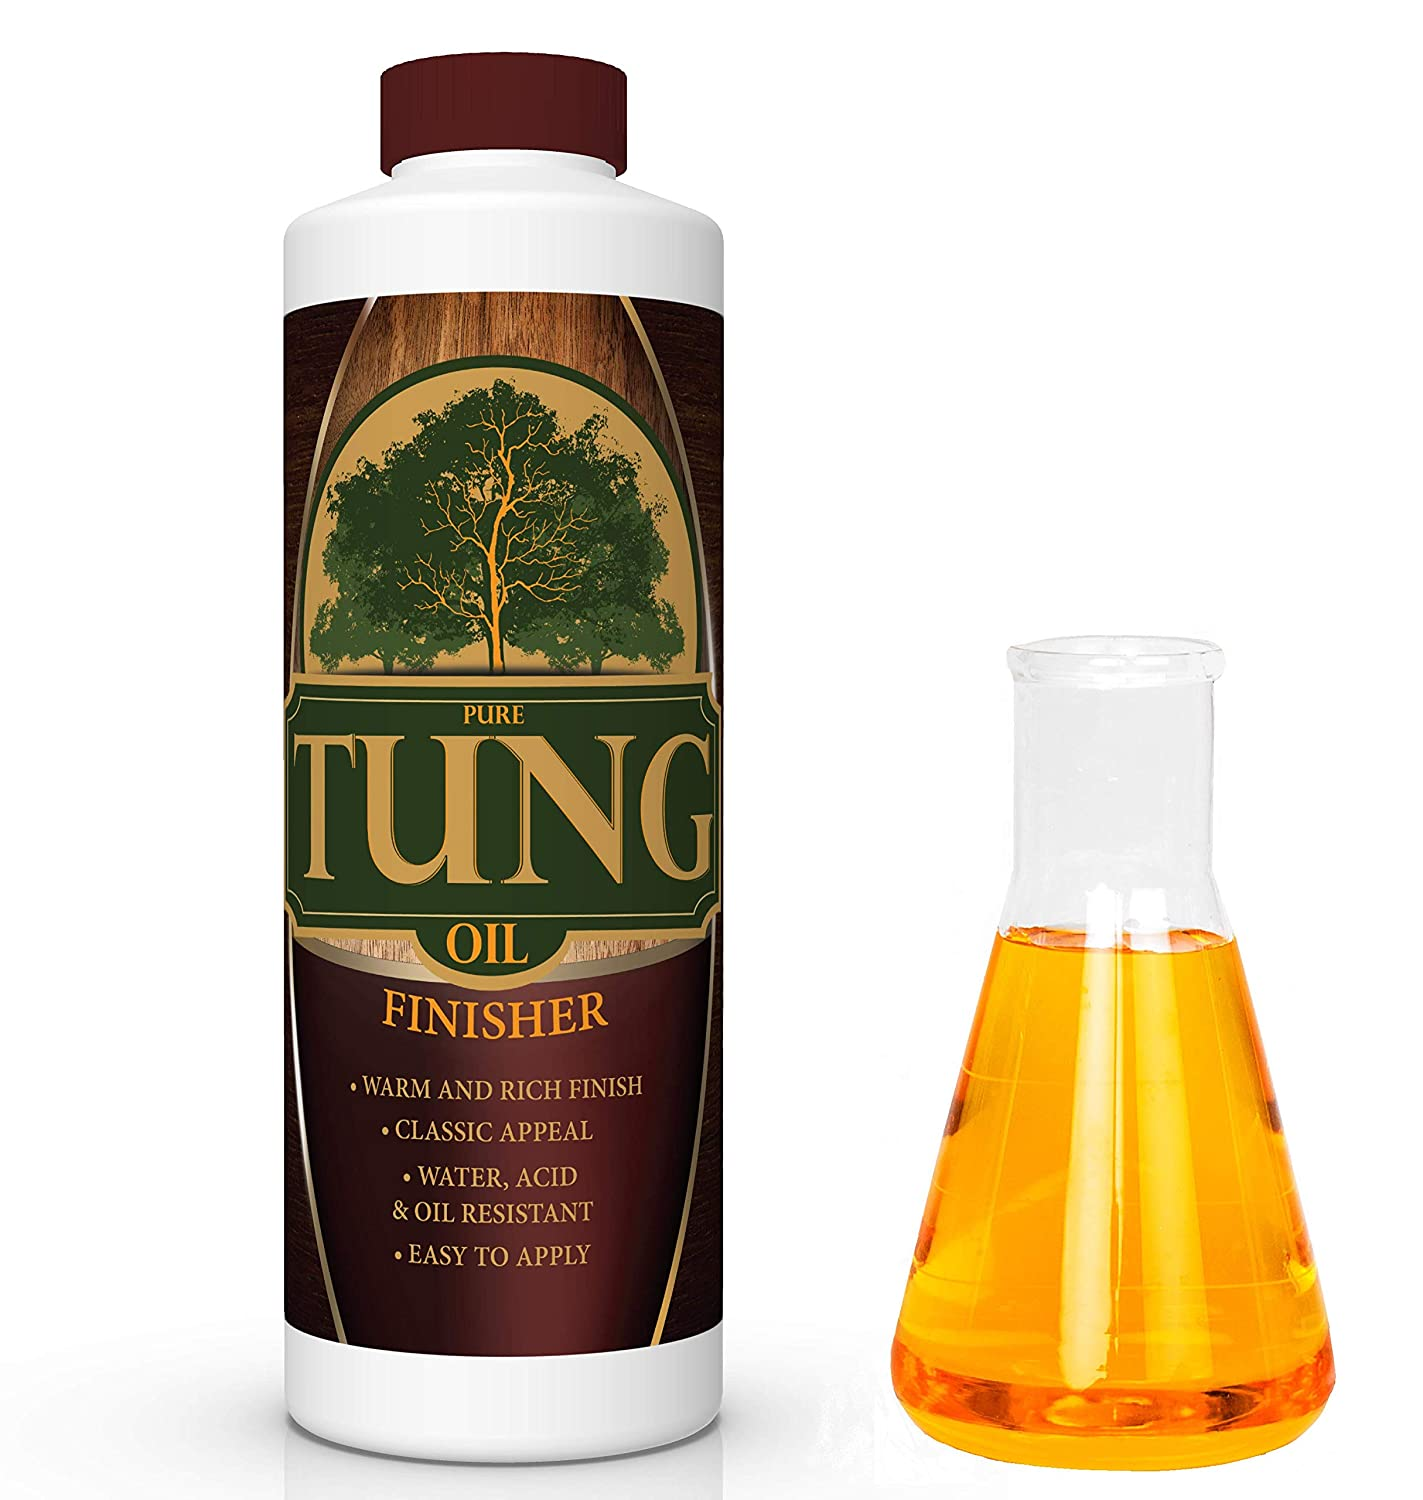 100% Pure Tung Oil Finish Wood Stain & Natural Sealer for All Types of Wood (32 oz)